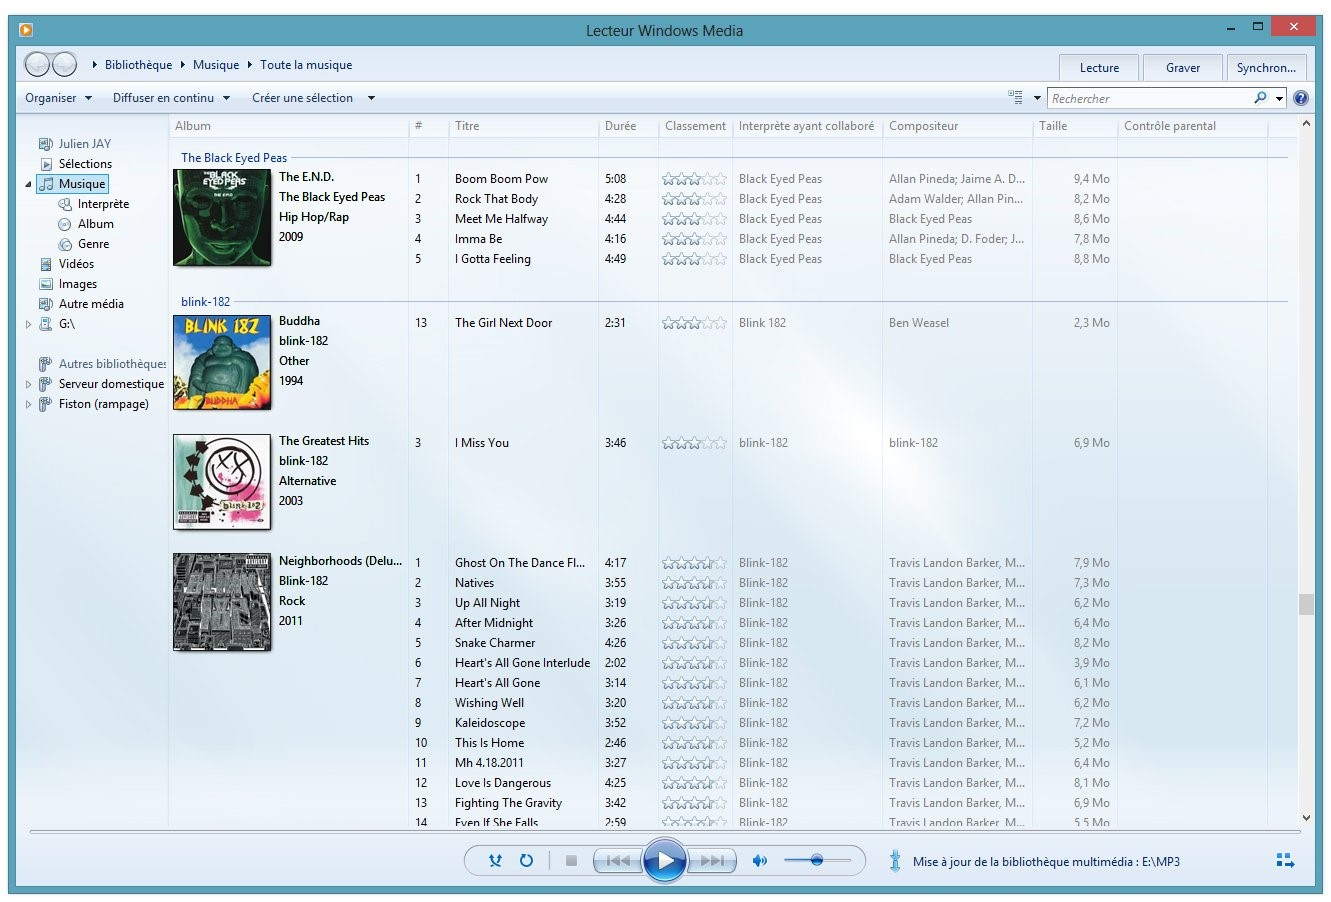 Windows media player alternatives and similar software its possible to update the information on windows media player or report it as discontinued duplicated or spam ccuart Images